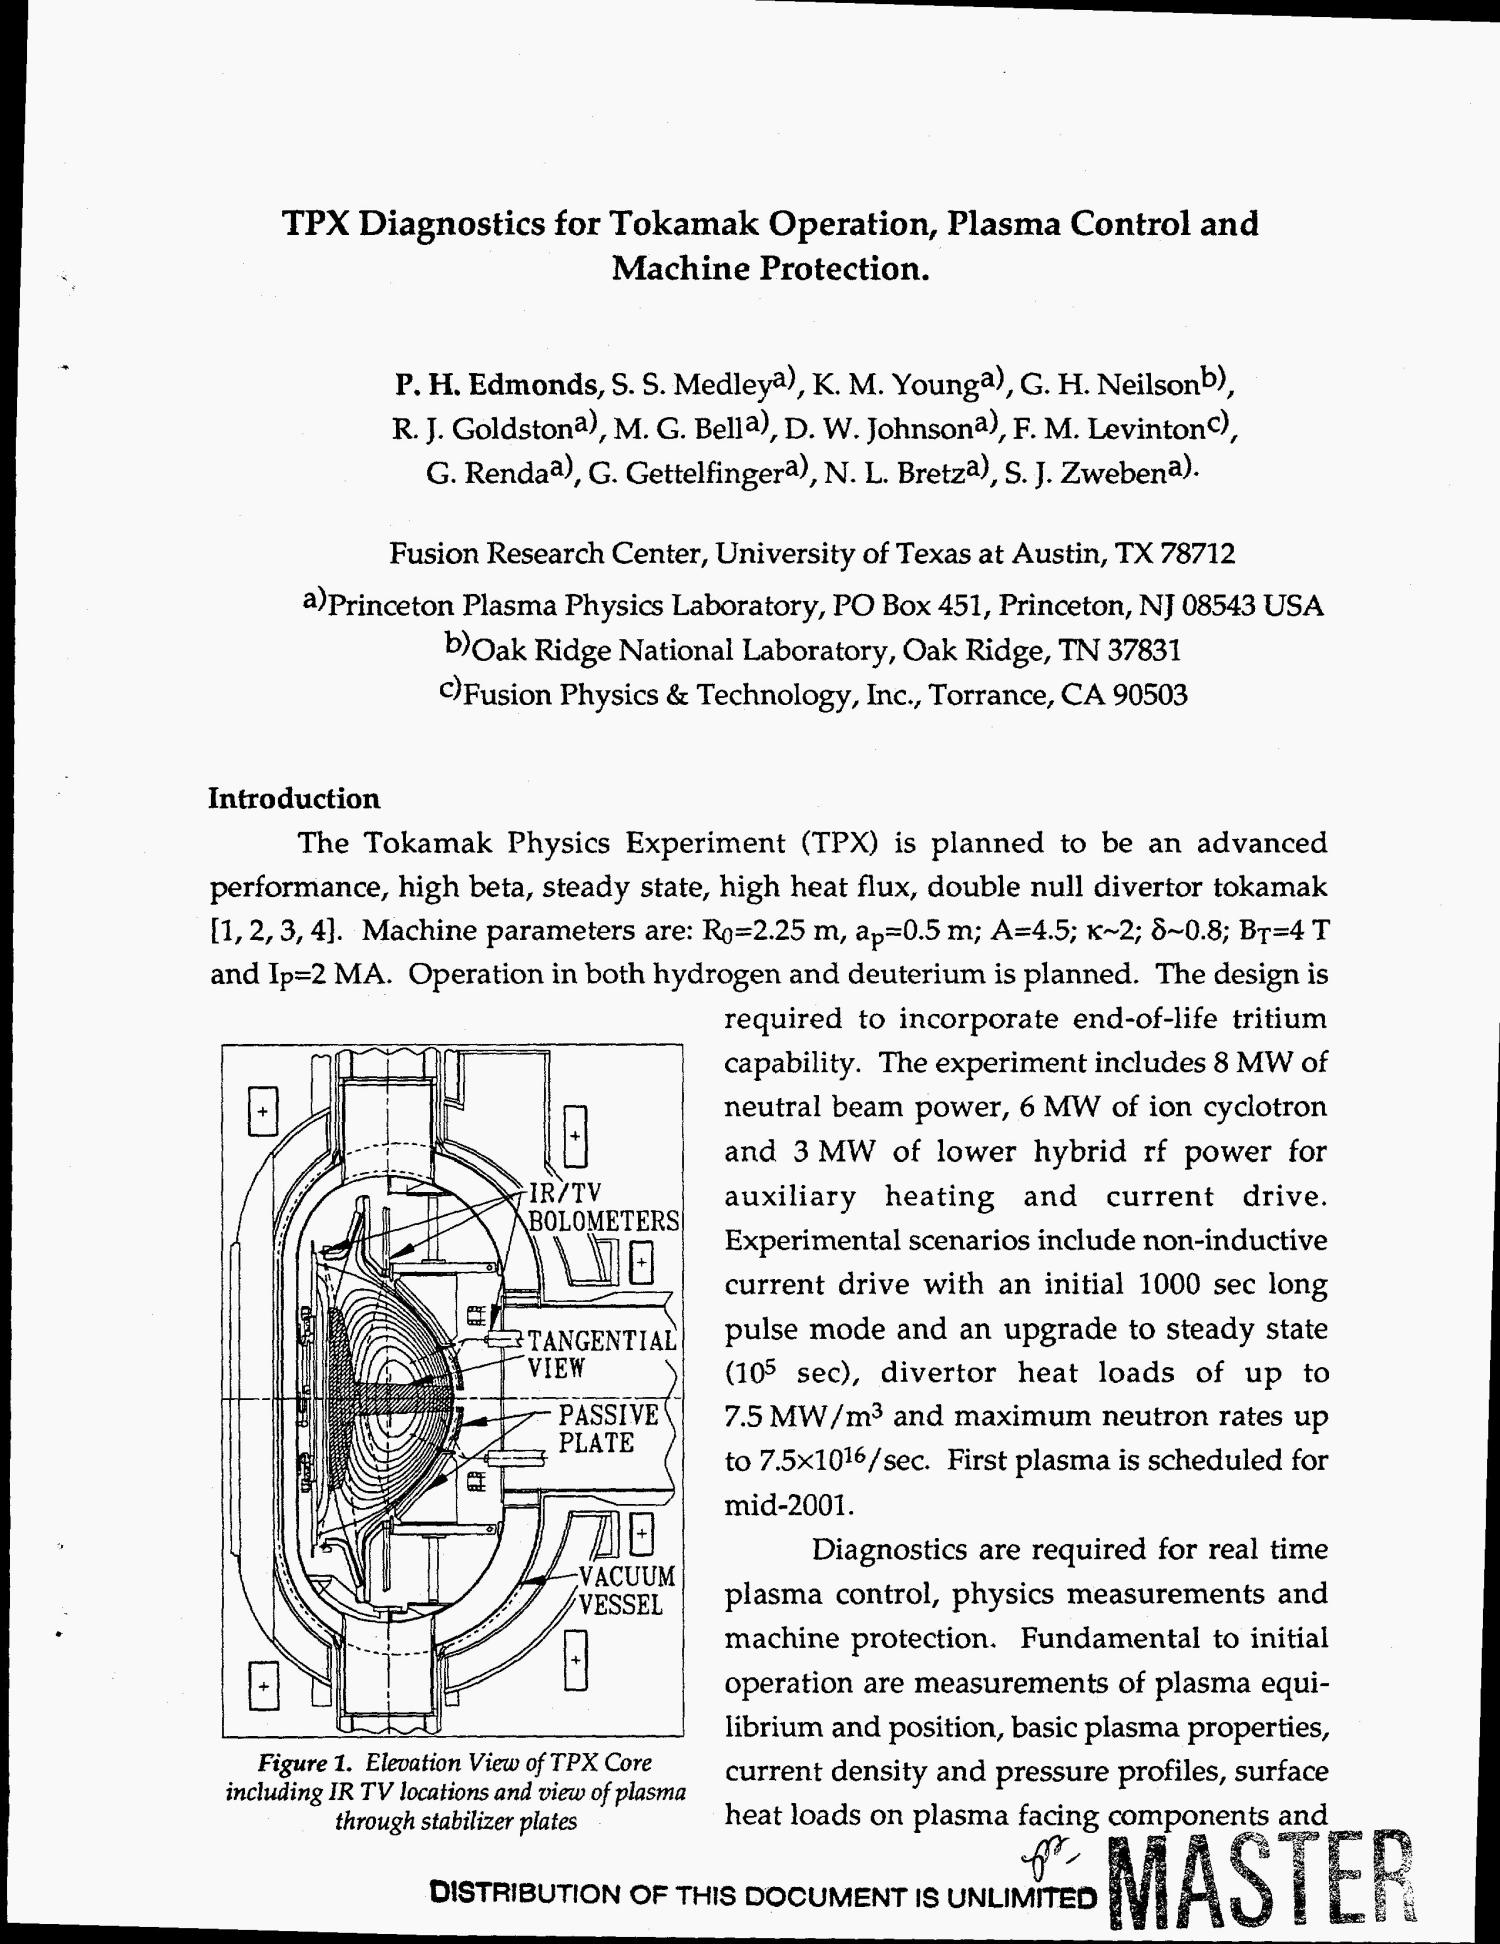 TPX diagnostics for tokamak operation, plasma control and machine protection                                                                                                      [Sequence #]: 4 of 8